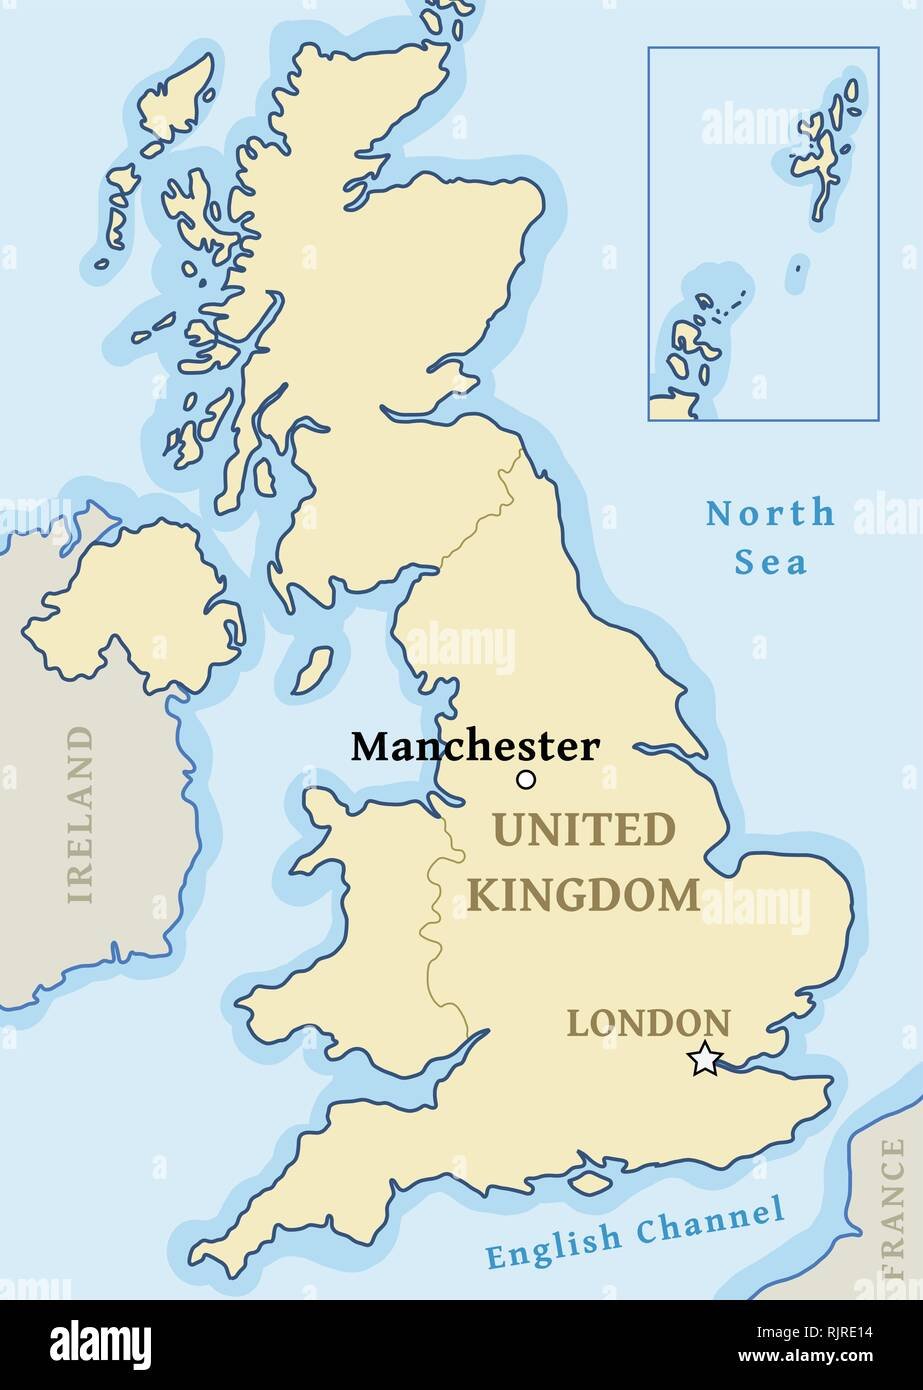 Manchester Map Location City Marked In United Kingdom Uk Map